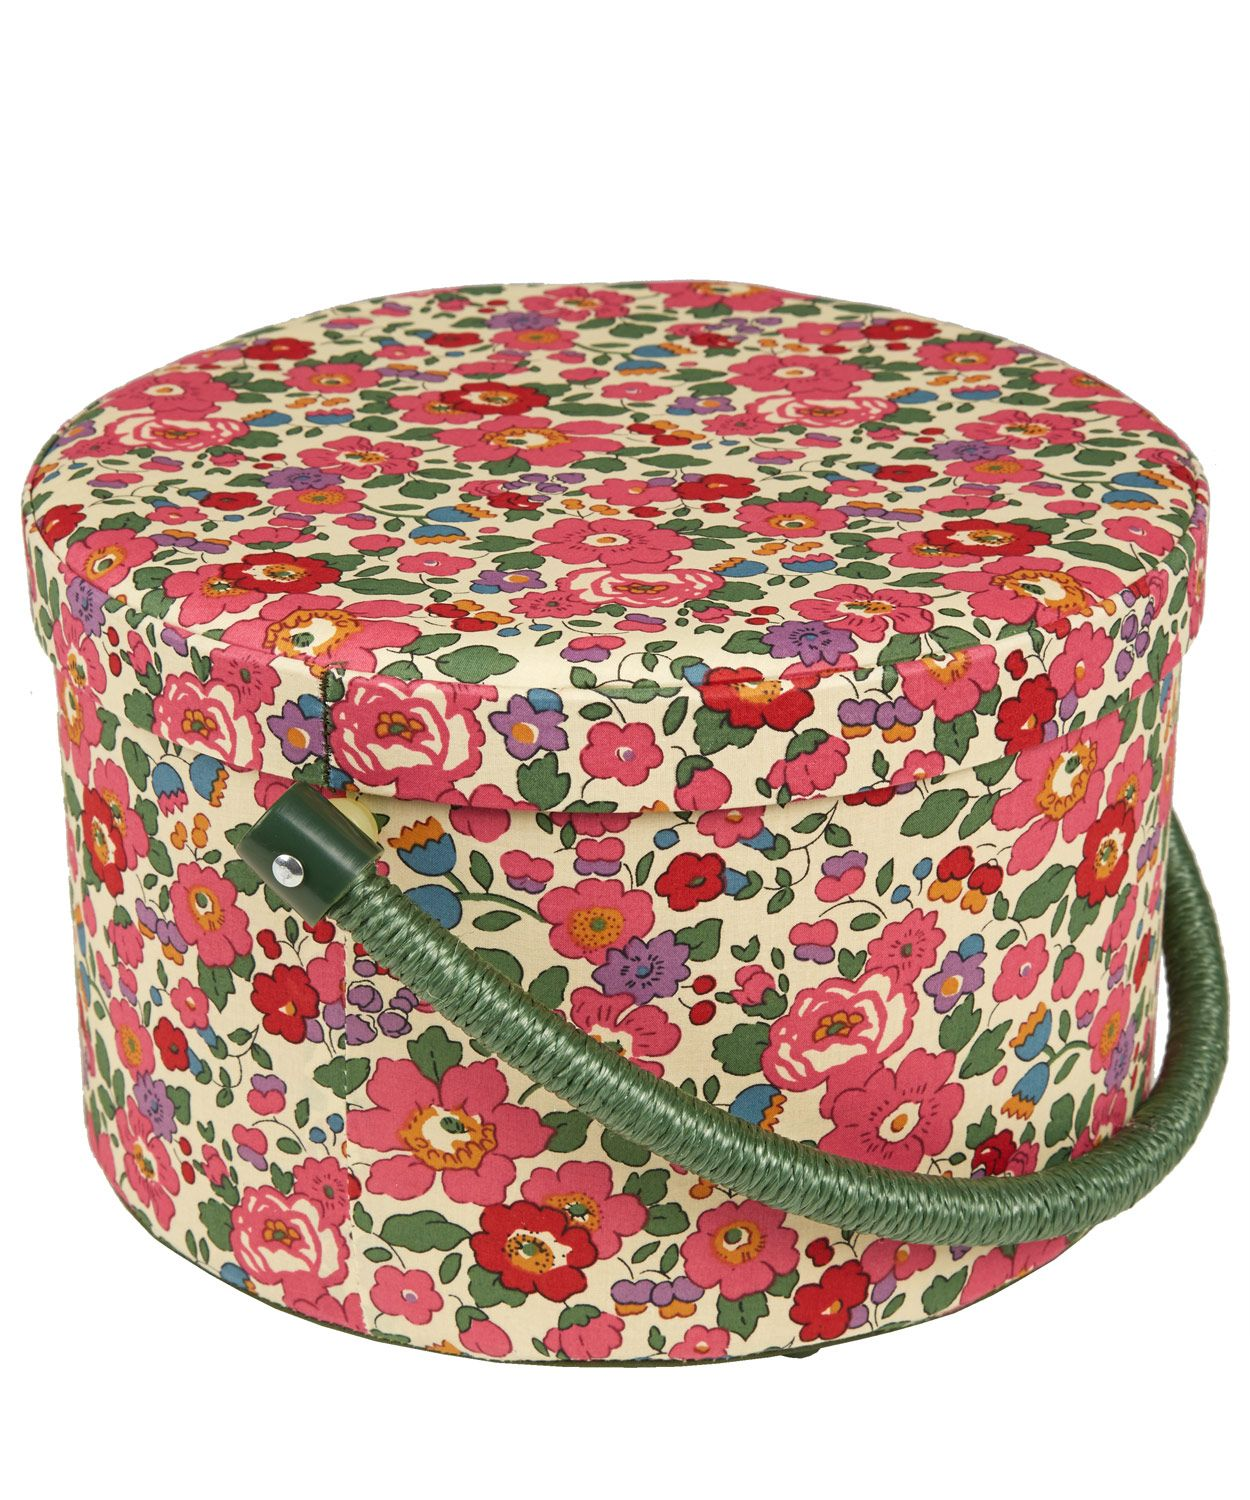 Decorative Boxes Uk Liberty London Betsy Print Round Sewing Box  Haberdashery